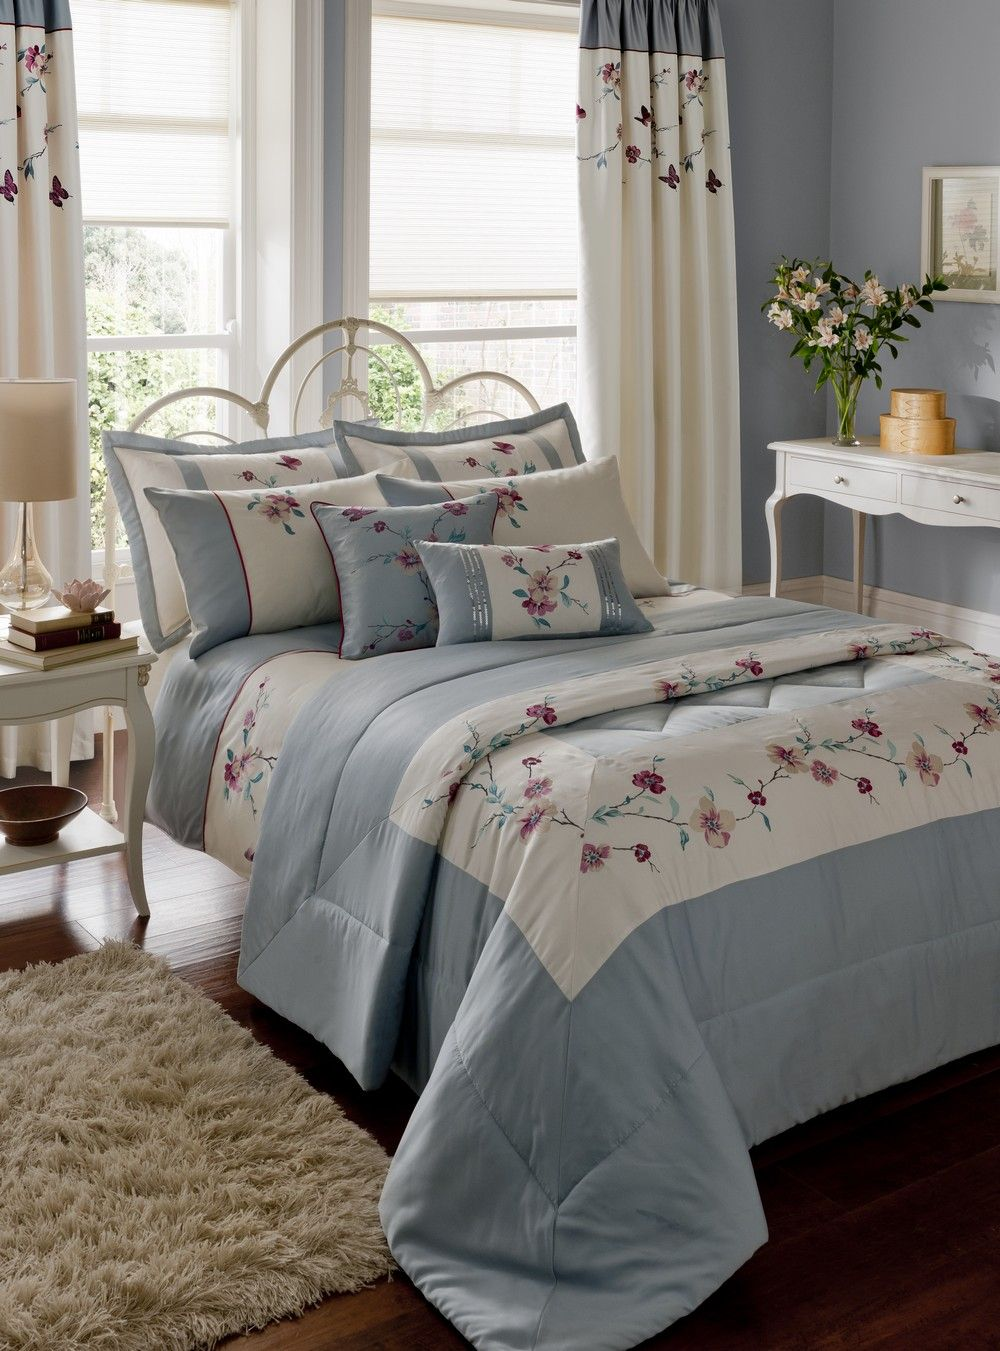 Details about Duck Egg Blue Cream Embroidered Duvet Cover ...